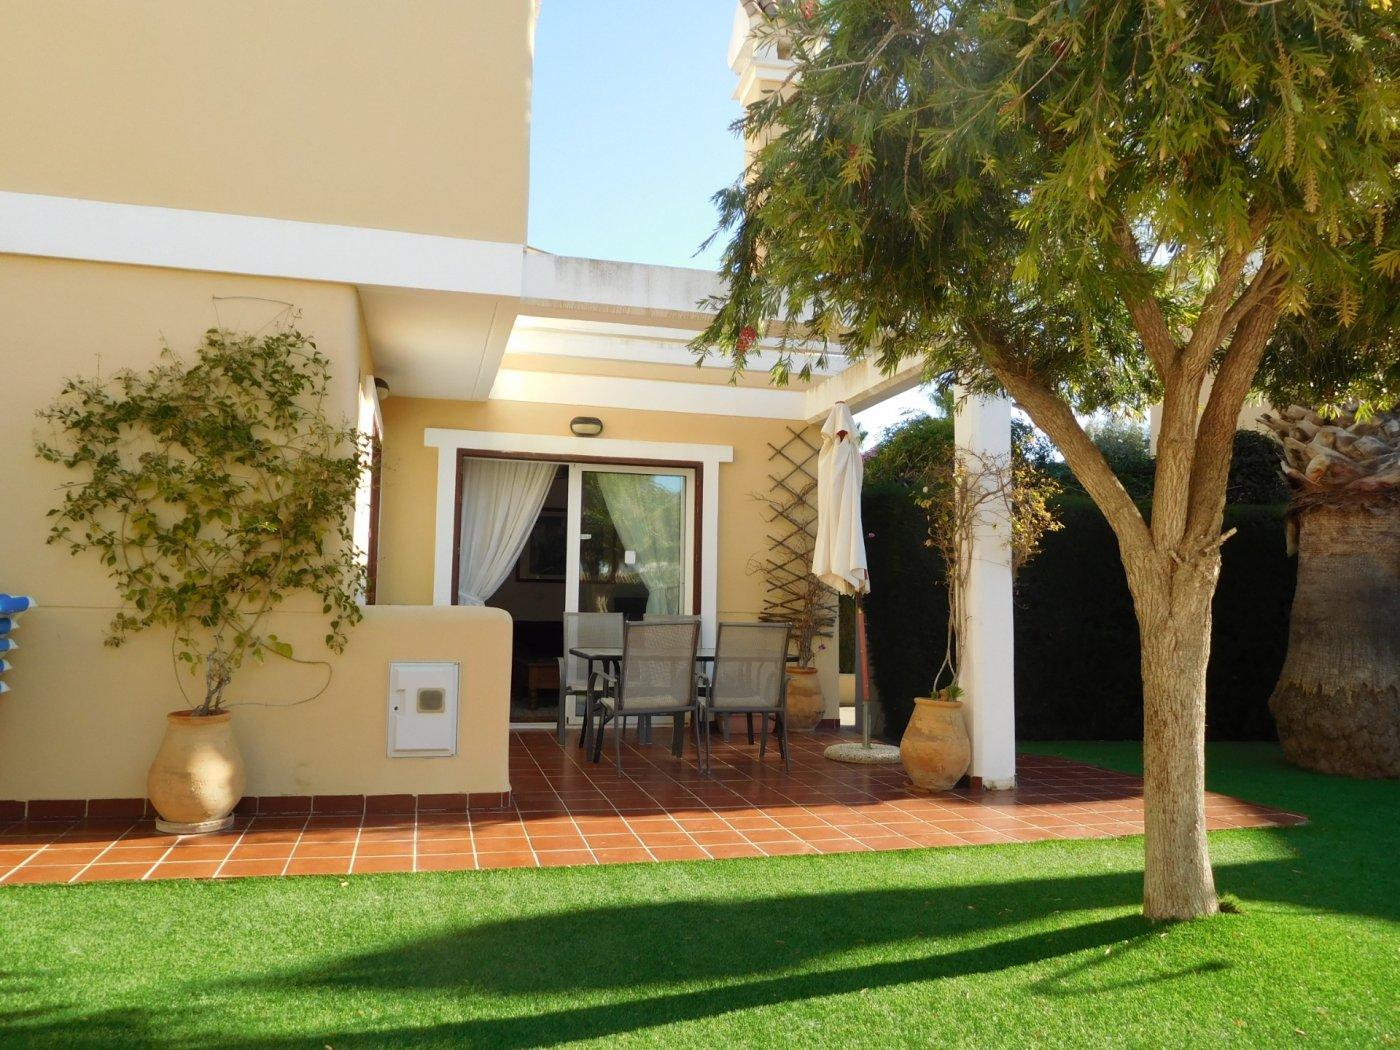 Gallery Image 38 of Casa For rent in Los Naranjos, La Manga Club With Pool